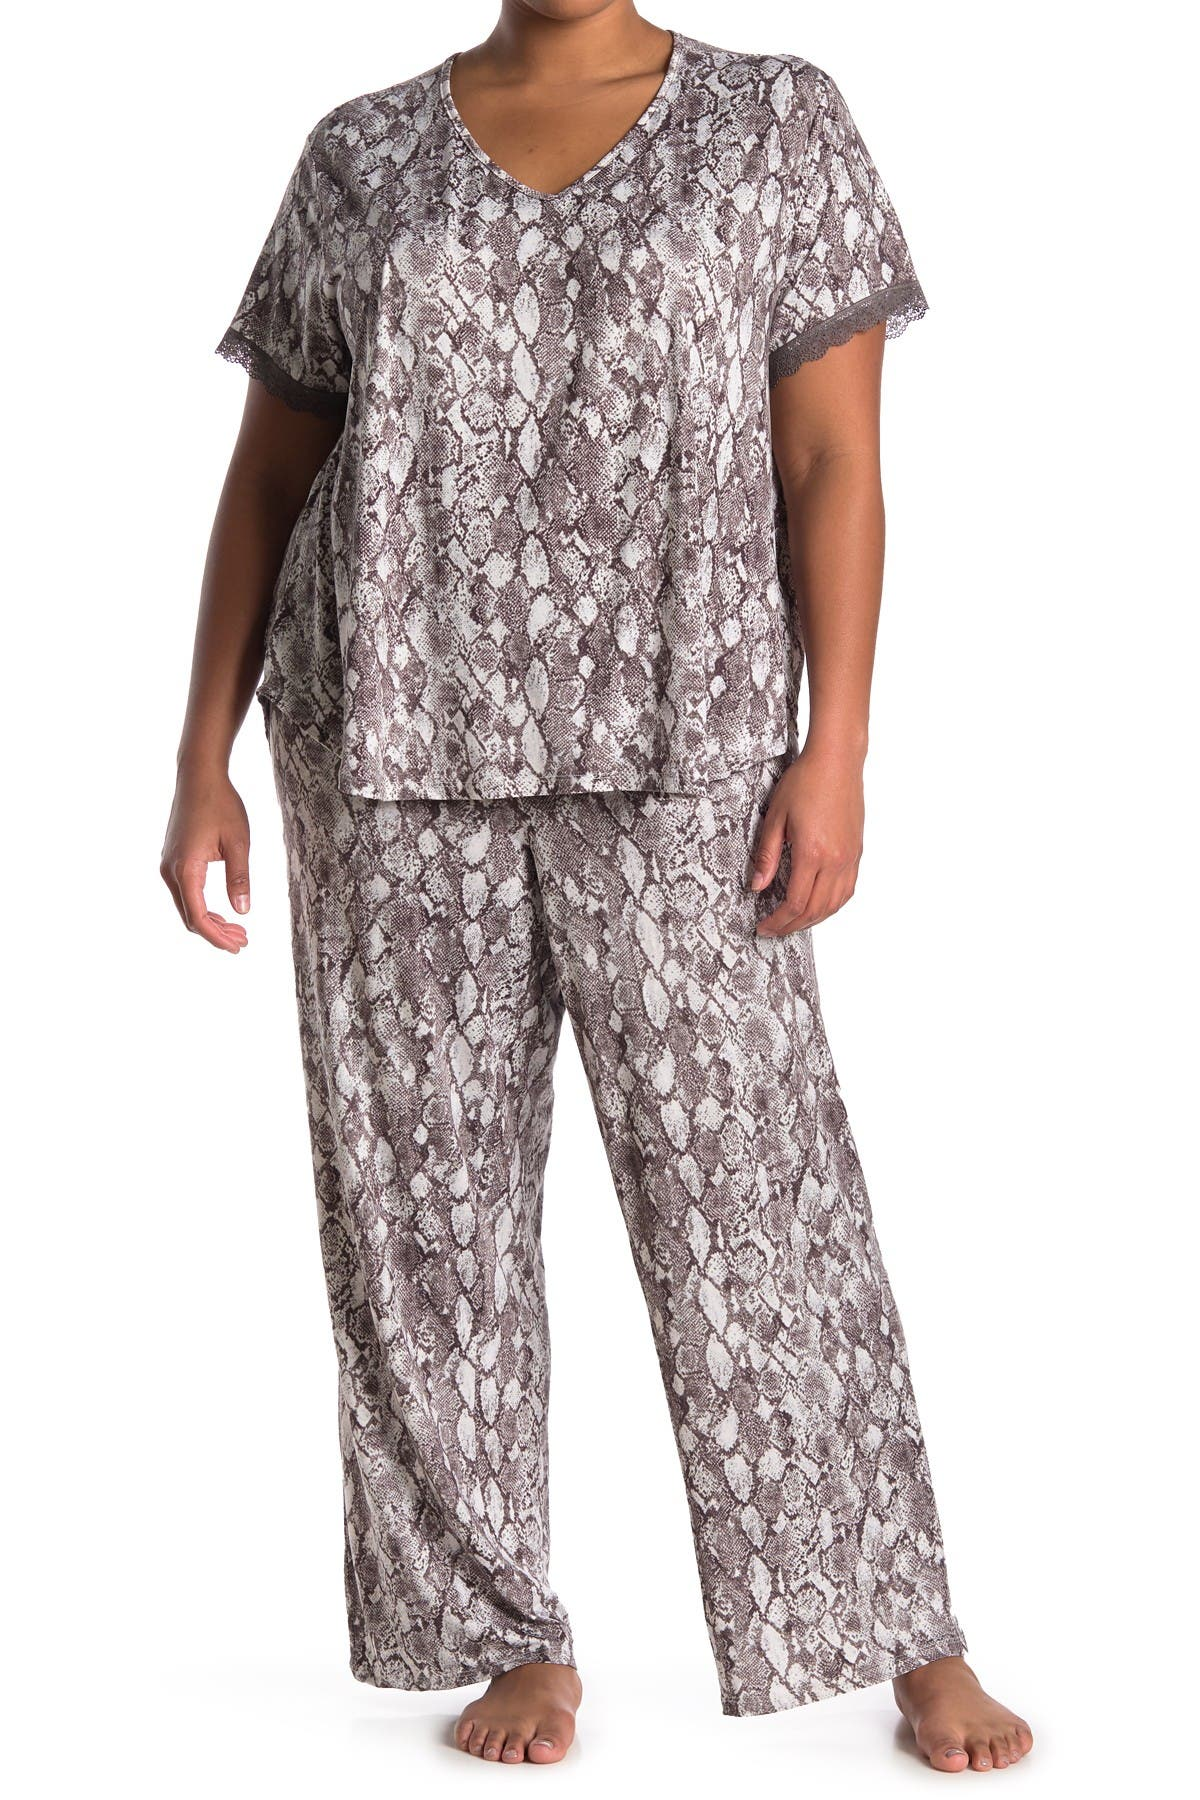 Image of Flora by Flora Nikrooz Printed Pajama Set